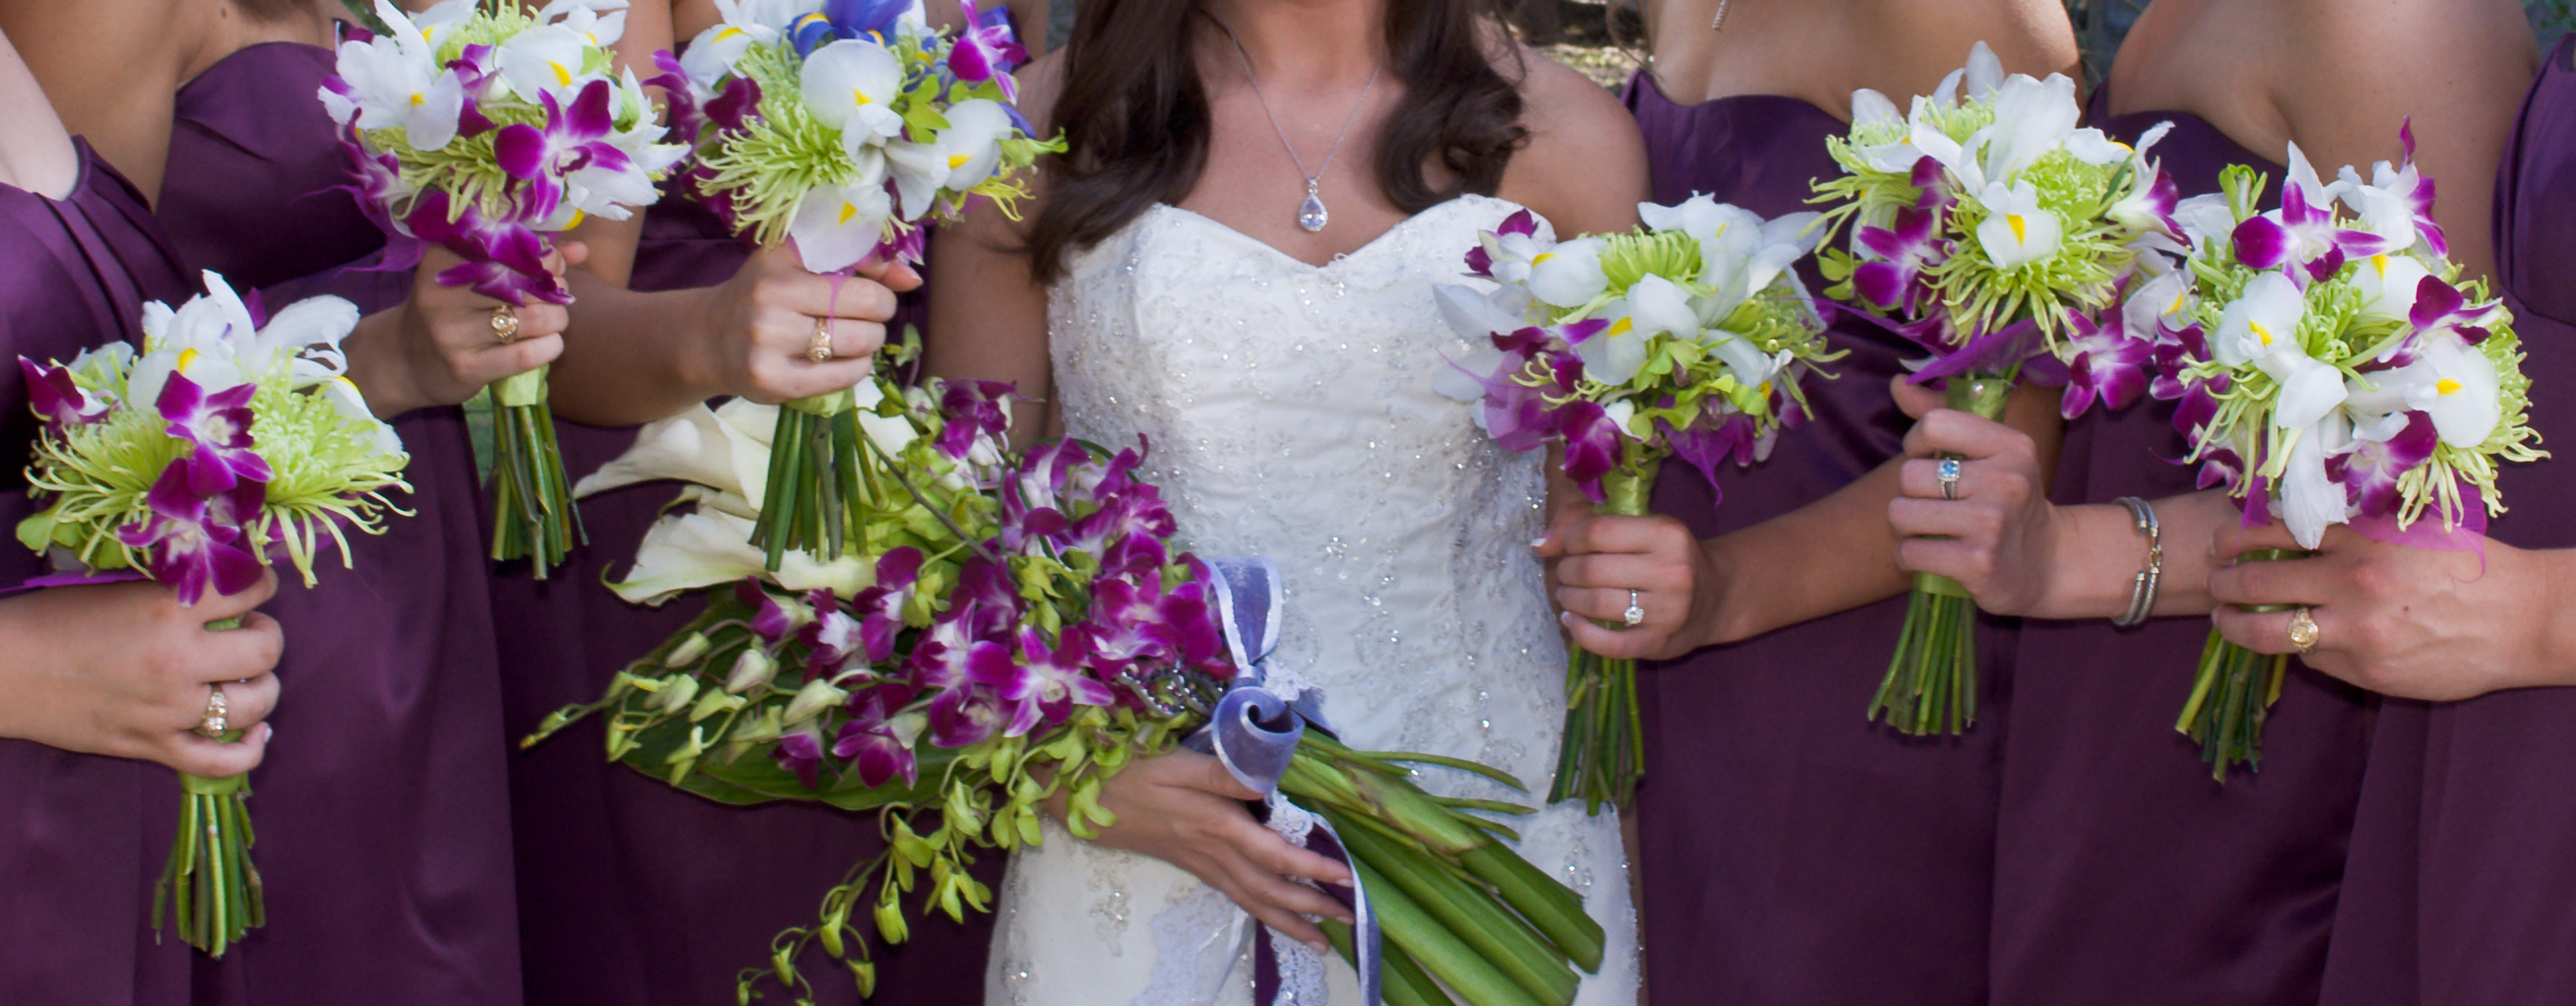 Ree Drummond Wedding